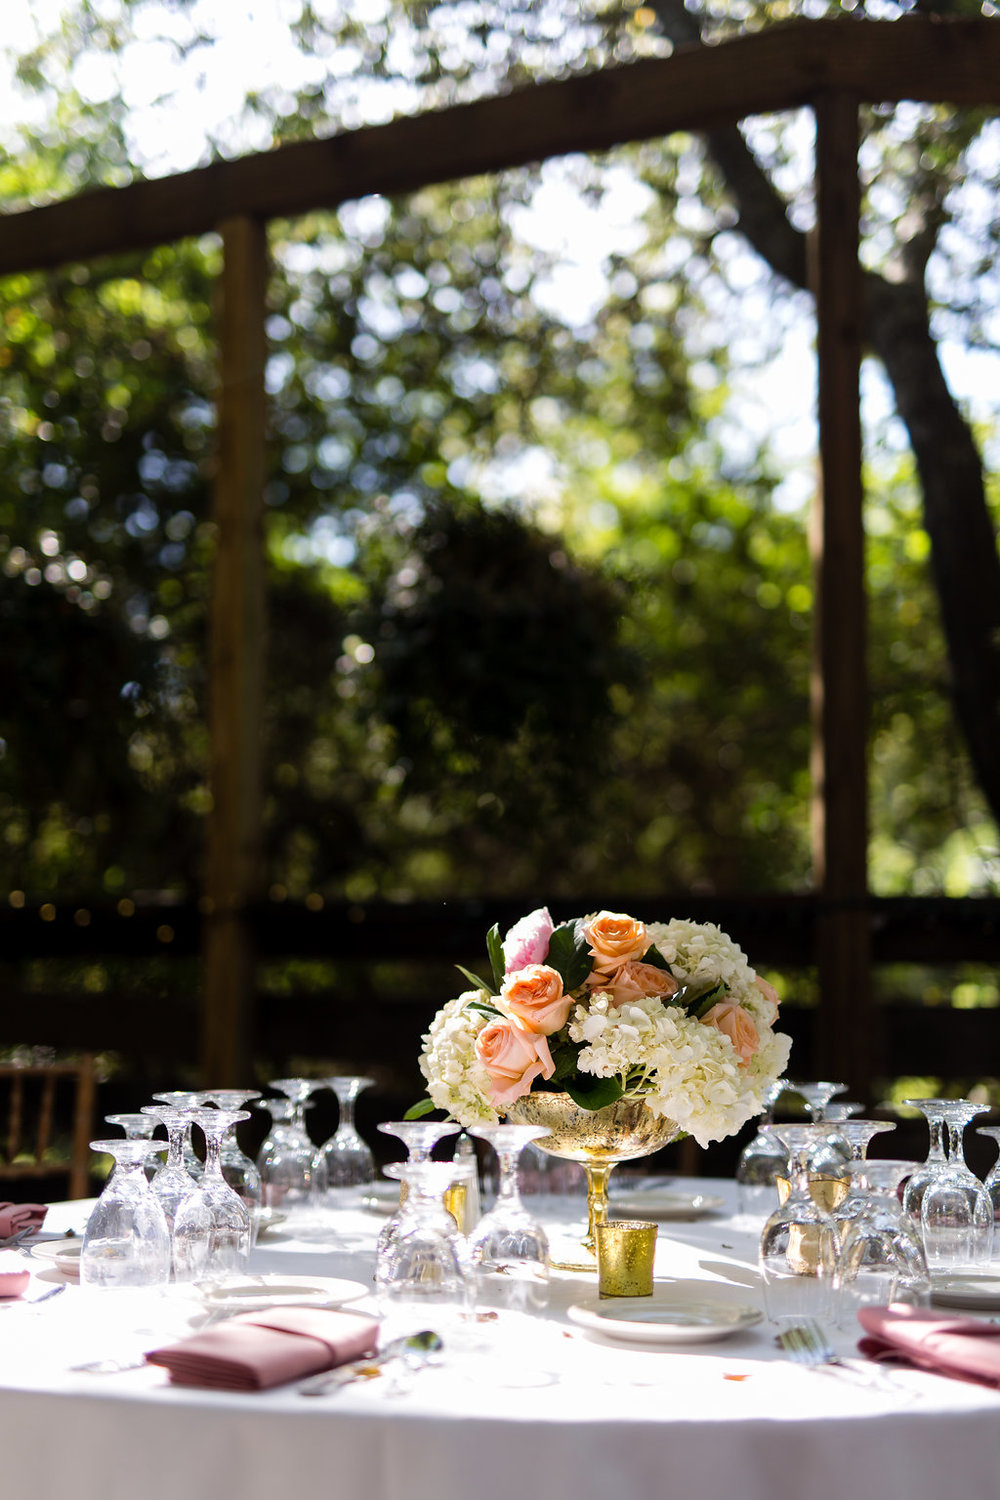 calamigos-ranch-malibu-wedding-details.jpeg